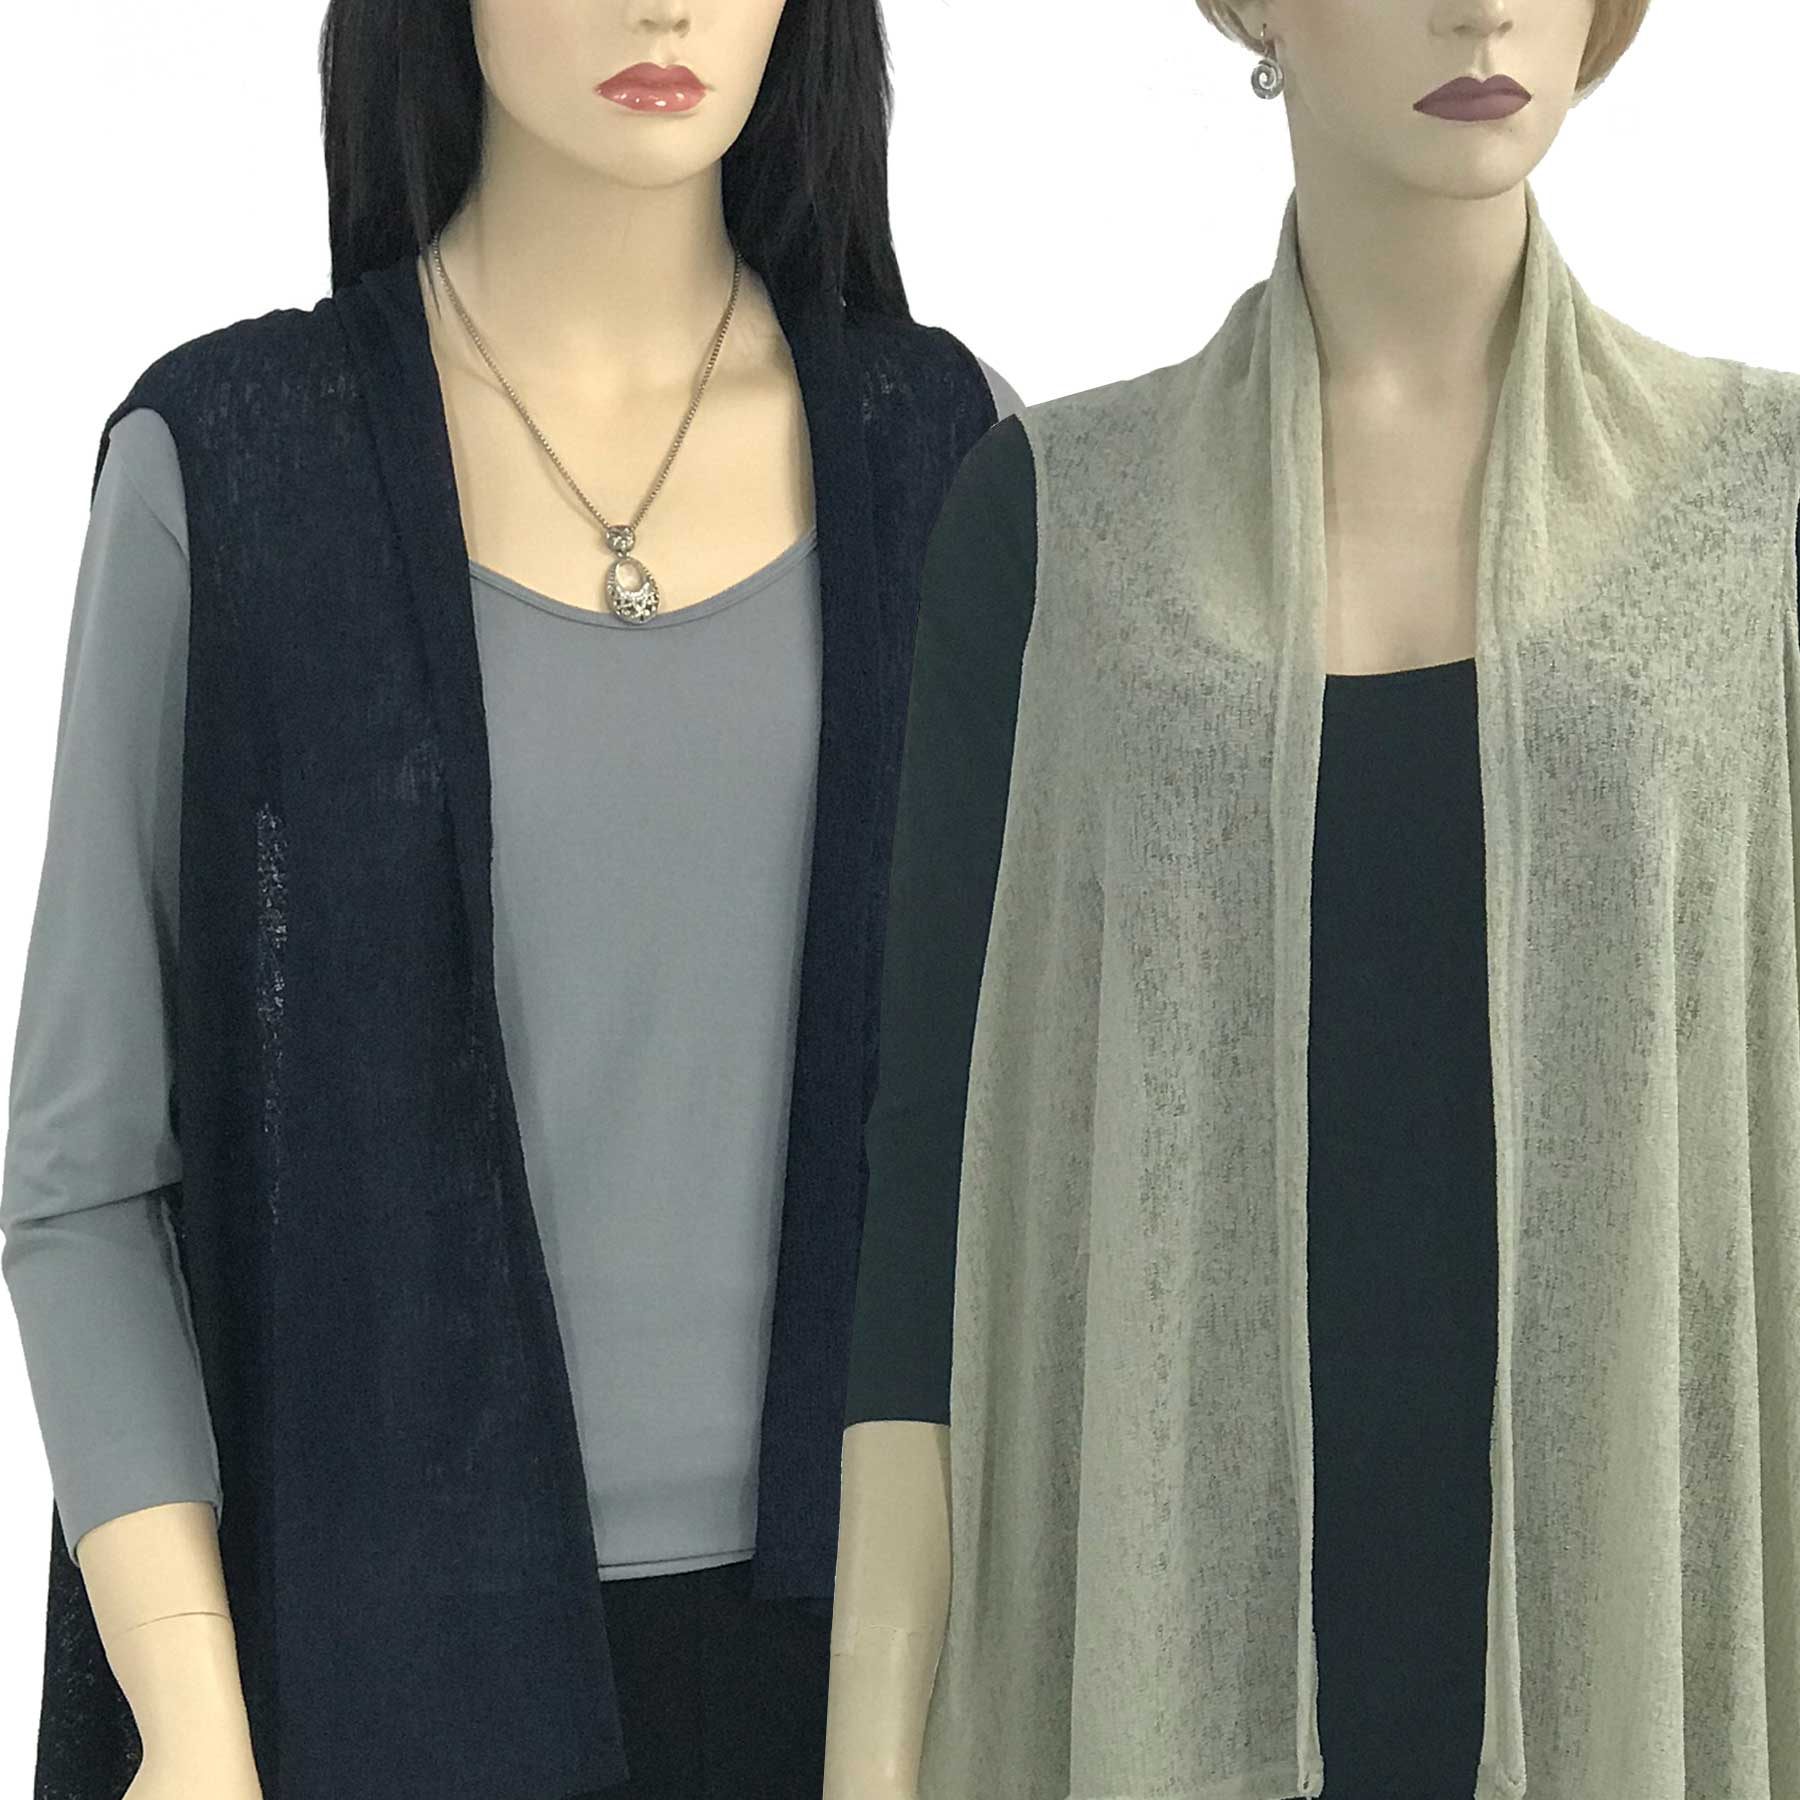 Jersey Knit Vests - Solid Color Texture 9718